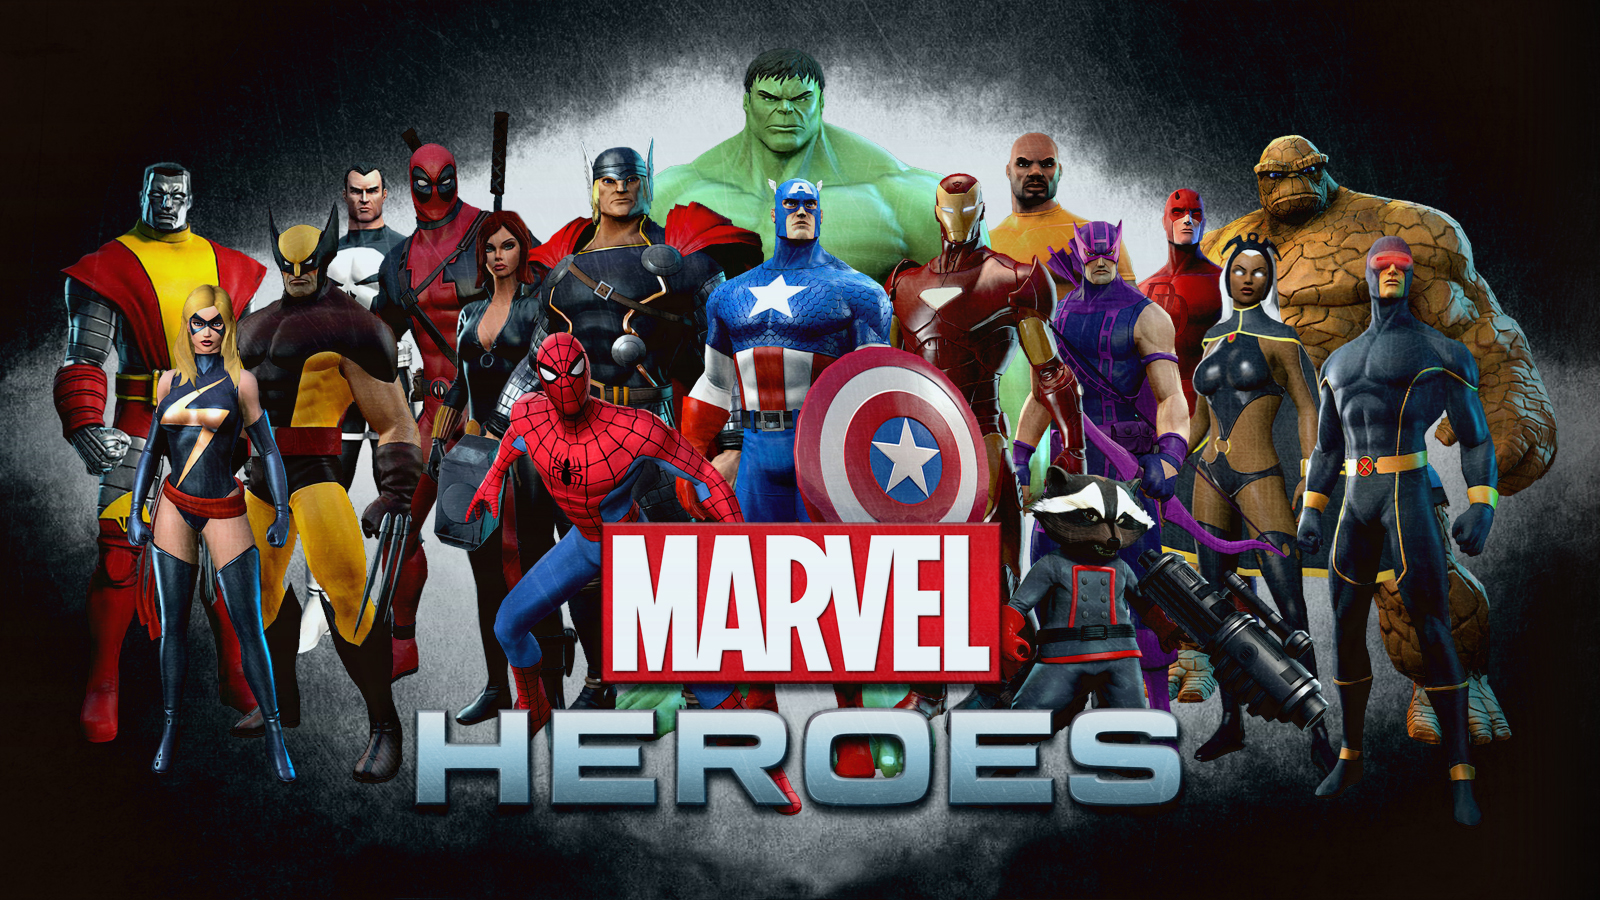 marvel avengers team super heroes pc background hd wallpaper